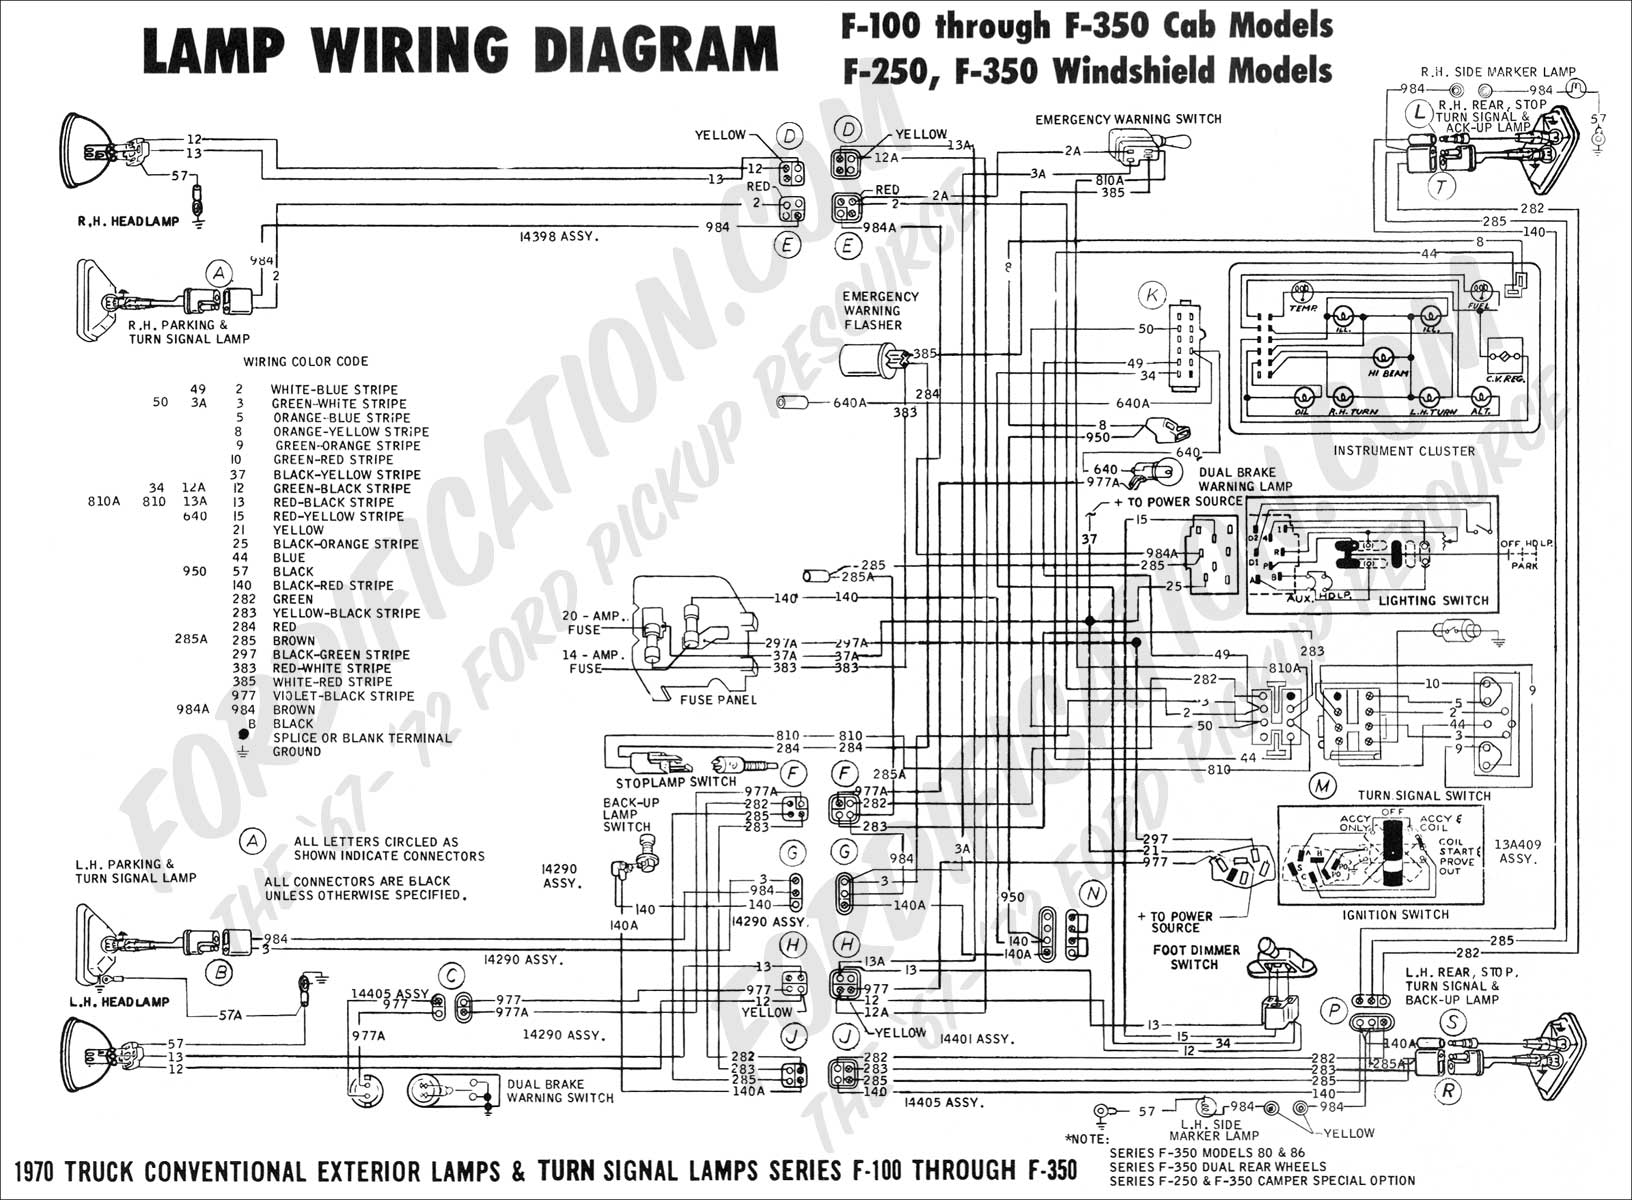 1291890 Turn Signal Cam Wiring. 1291890 Turn Signal Cam Wiring. GM. 1998 GMC Truck Wiring Diagram Charging System At Justdesktopwallpapers.com